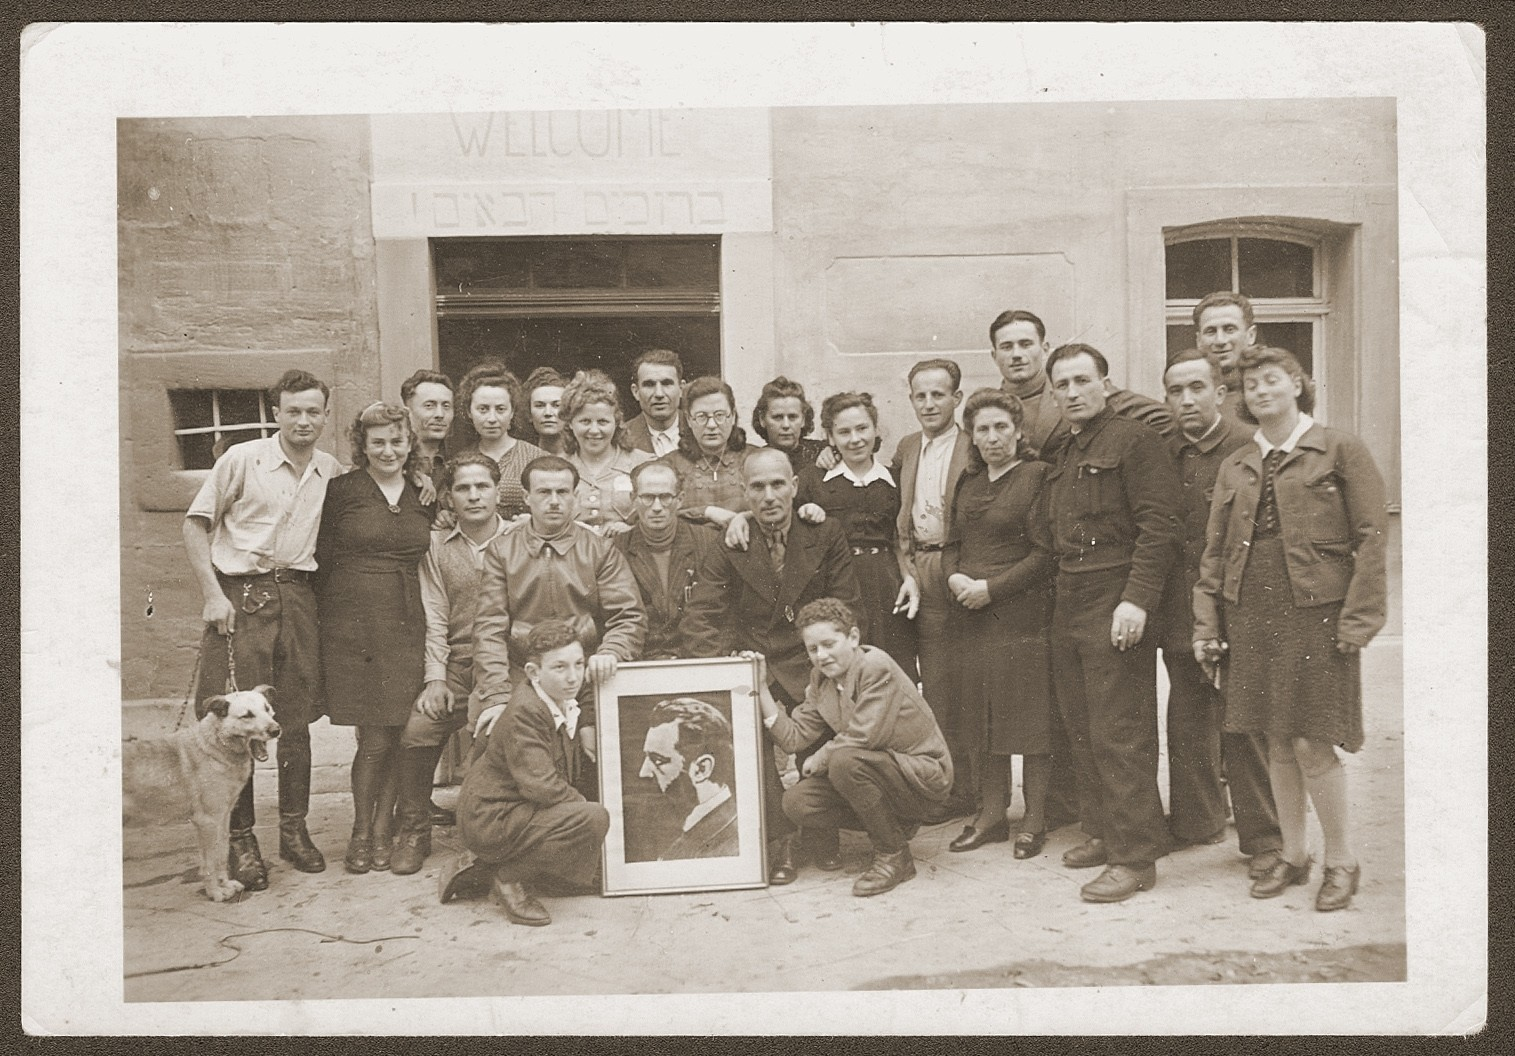 Group portrait of members of the Zettlitz hachshara with a framed picture of Theodor Herzl.